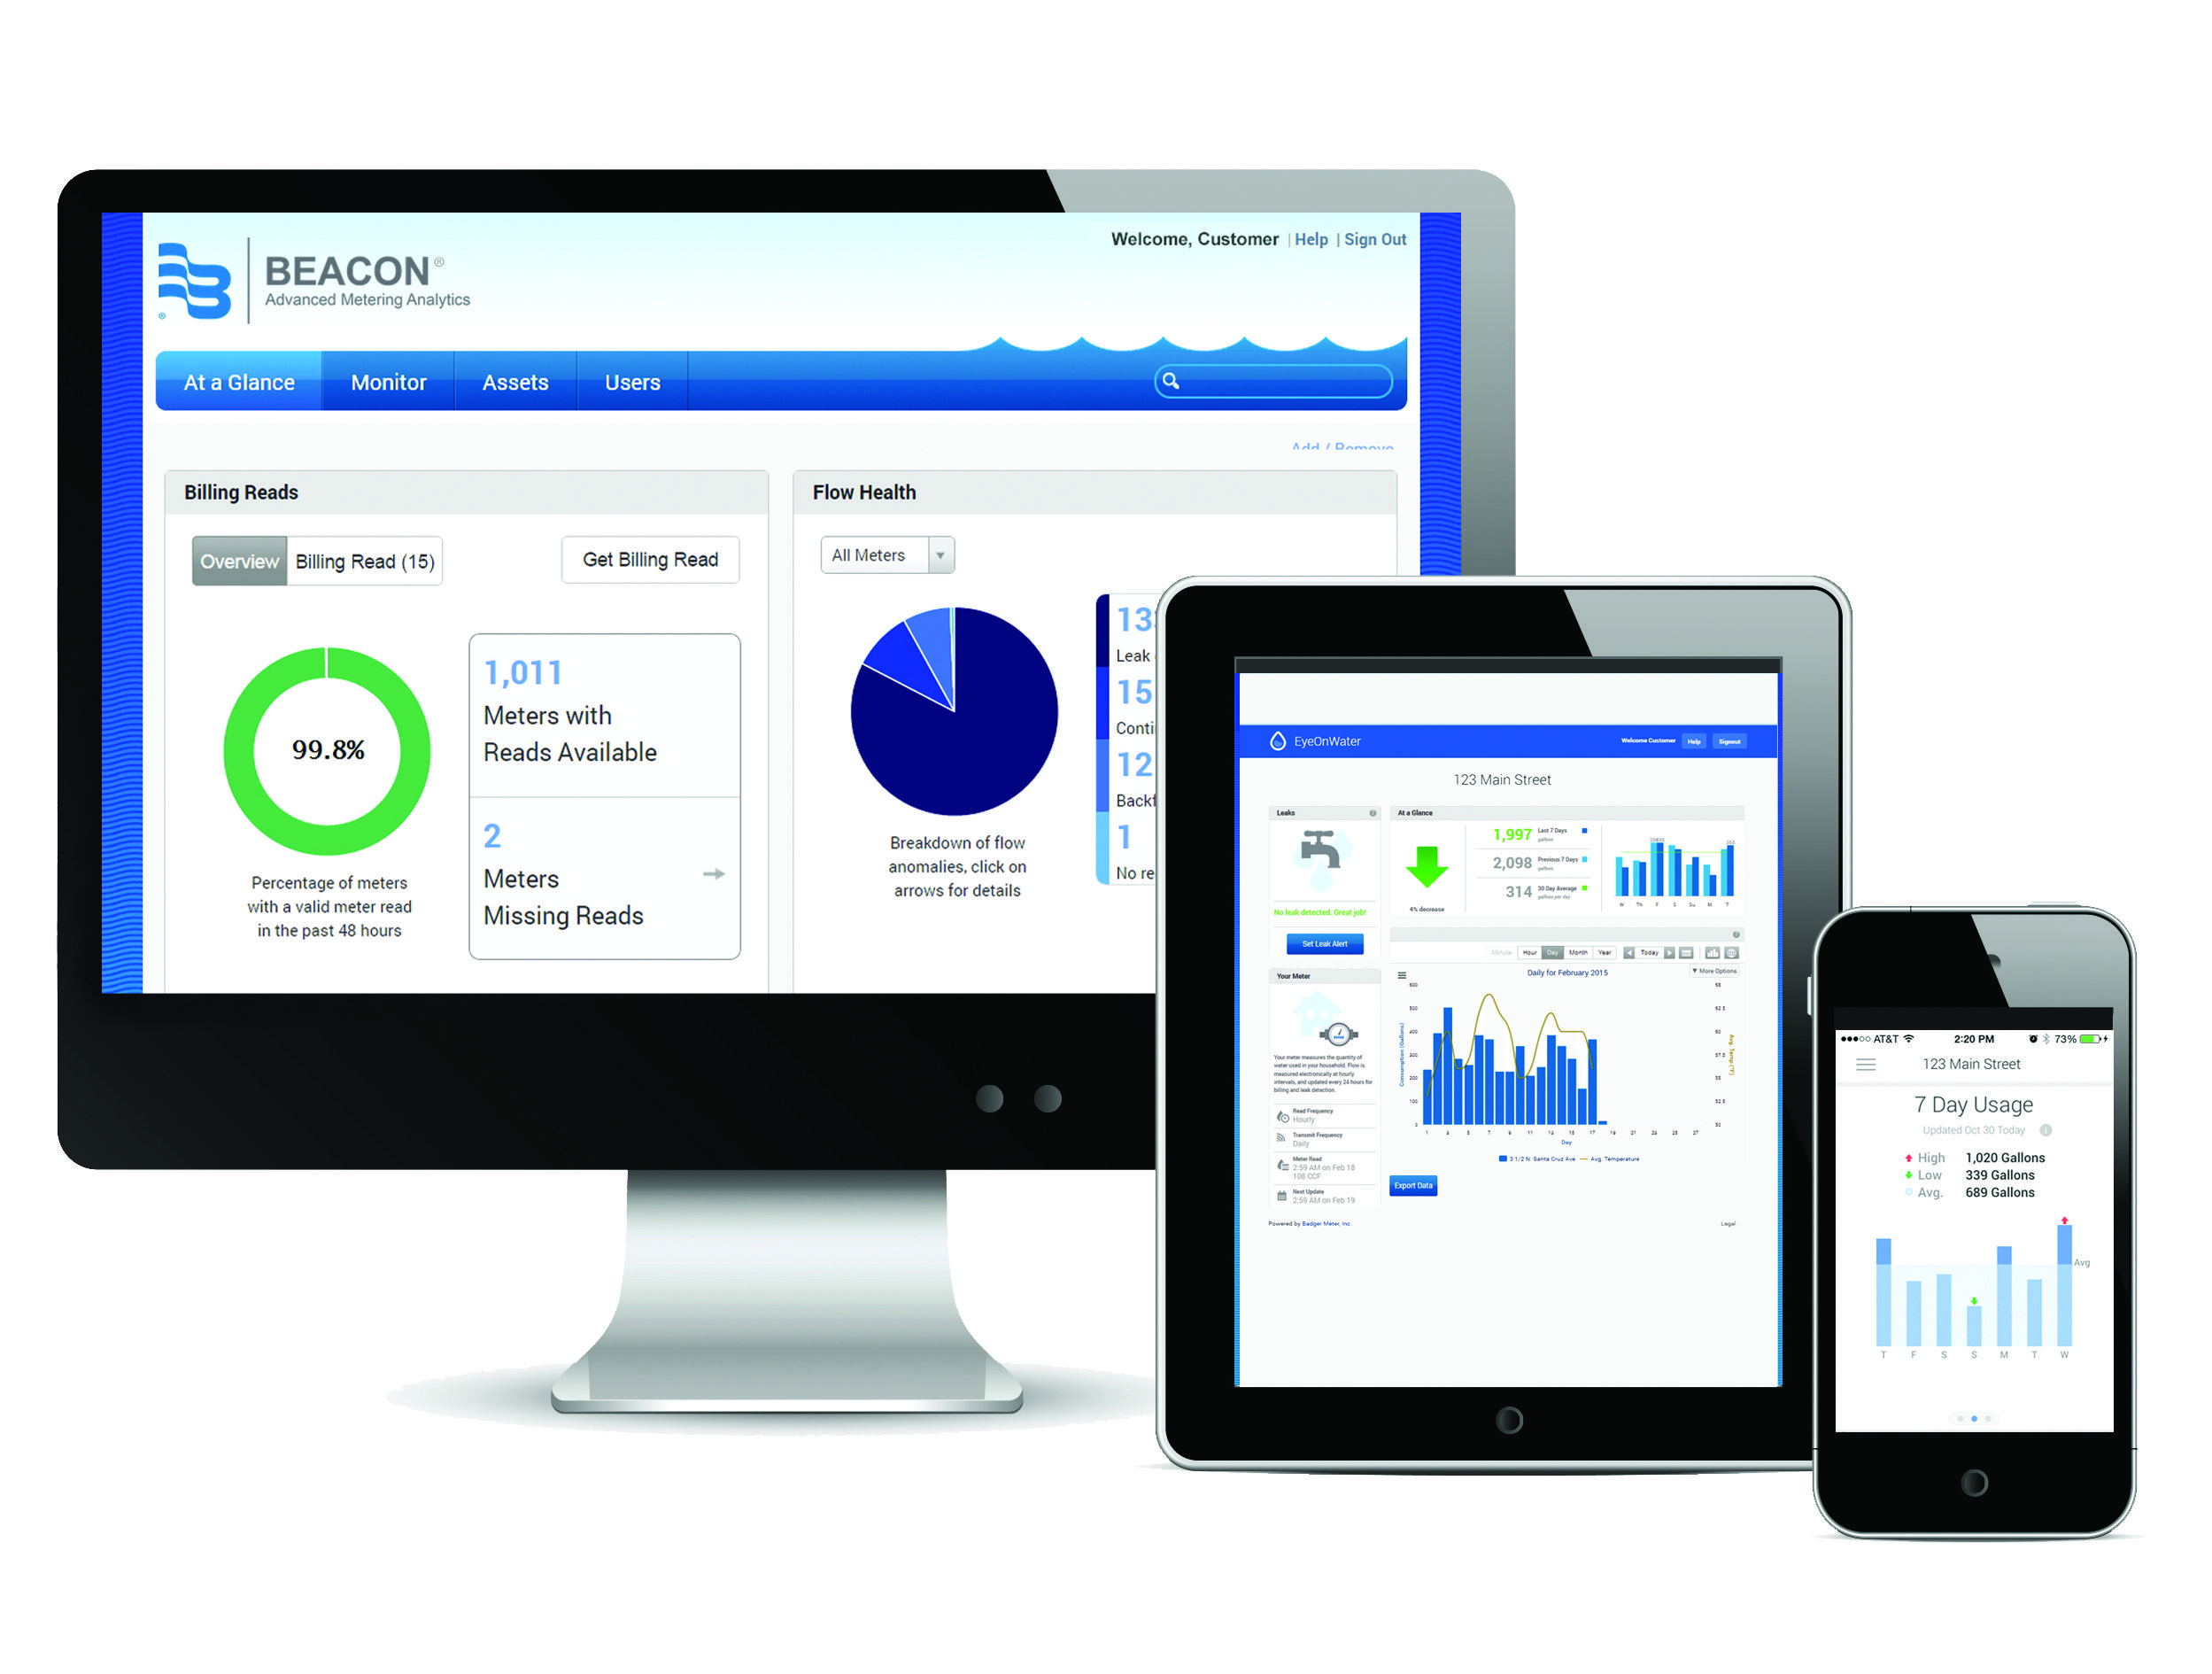 Managed Solution, BEACON® Advanced Metering Analytics (AMA)